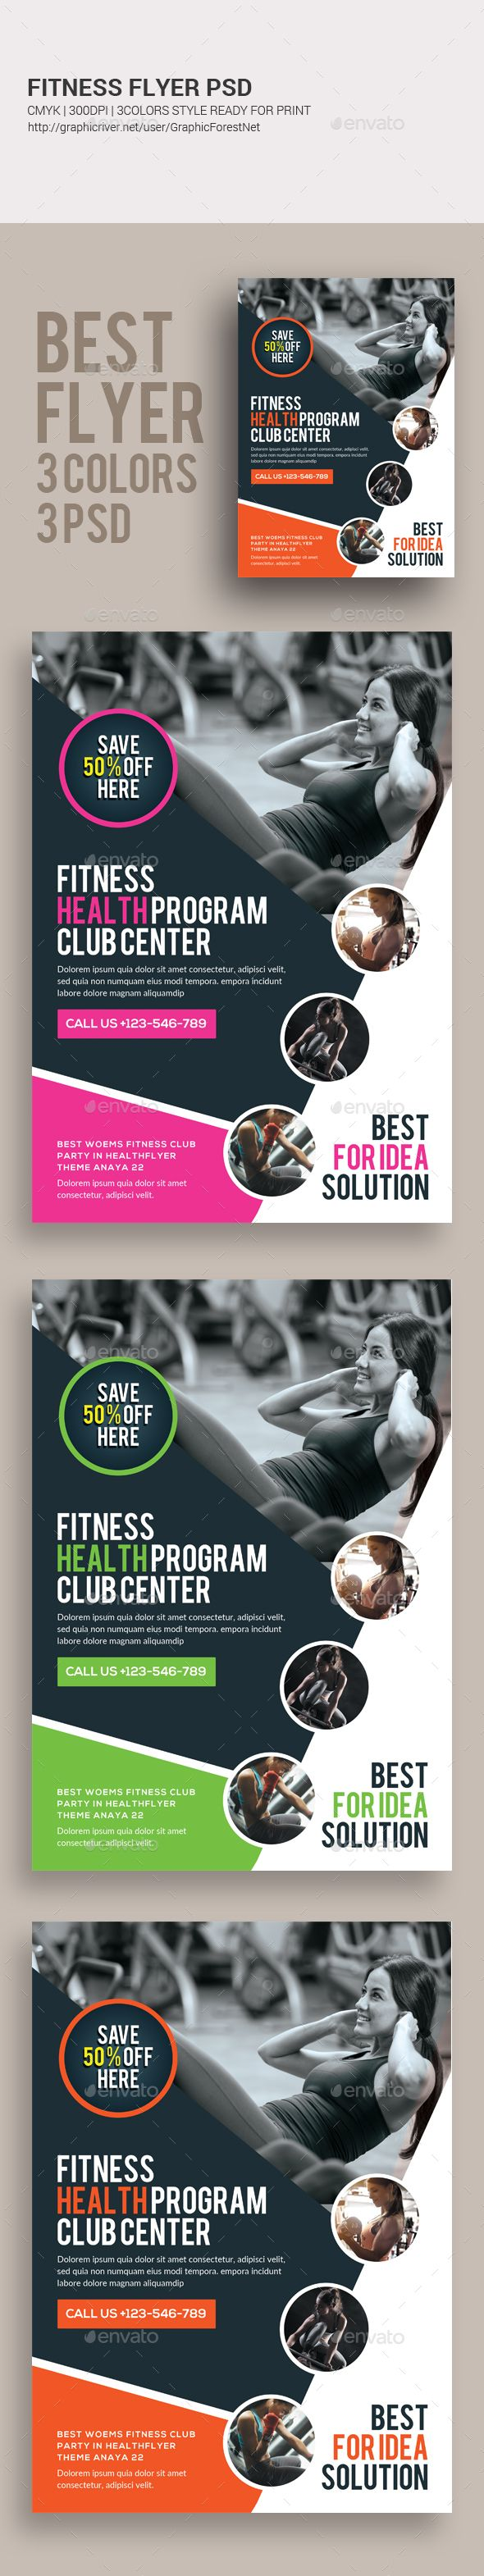 Fitness Flyer  — PSD Template #gym flyer #aerobics • Download ➝ https://graphicriver.net/item/fitness-flyer/18262174?ref=pxcr